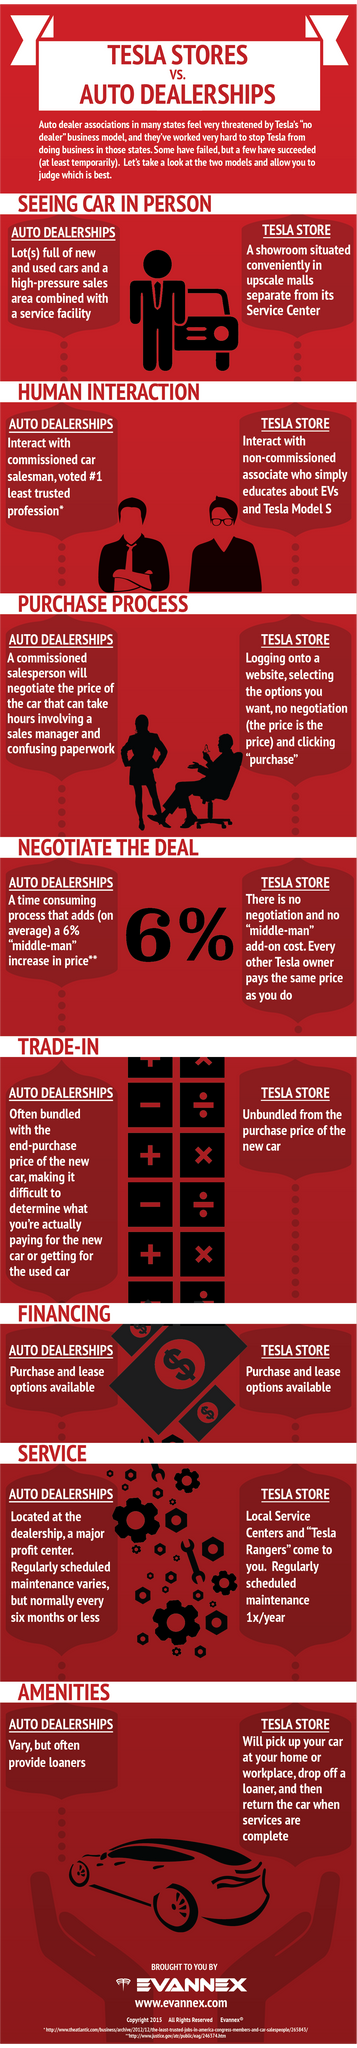 tesla stores vs franchise auto dealerships